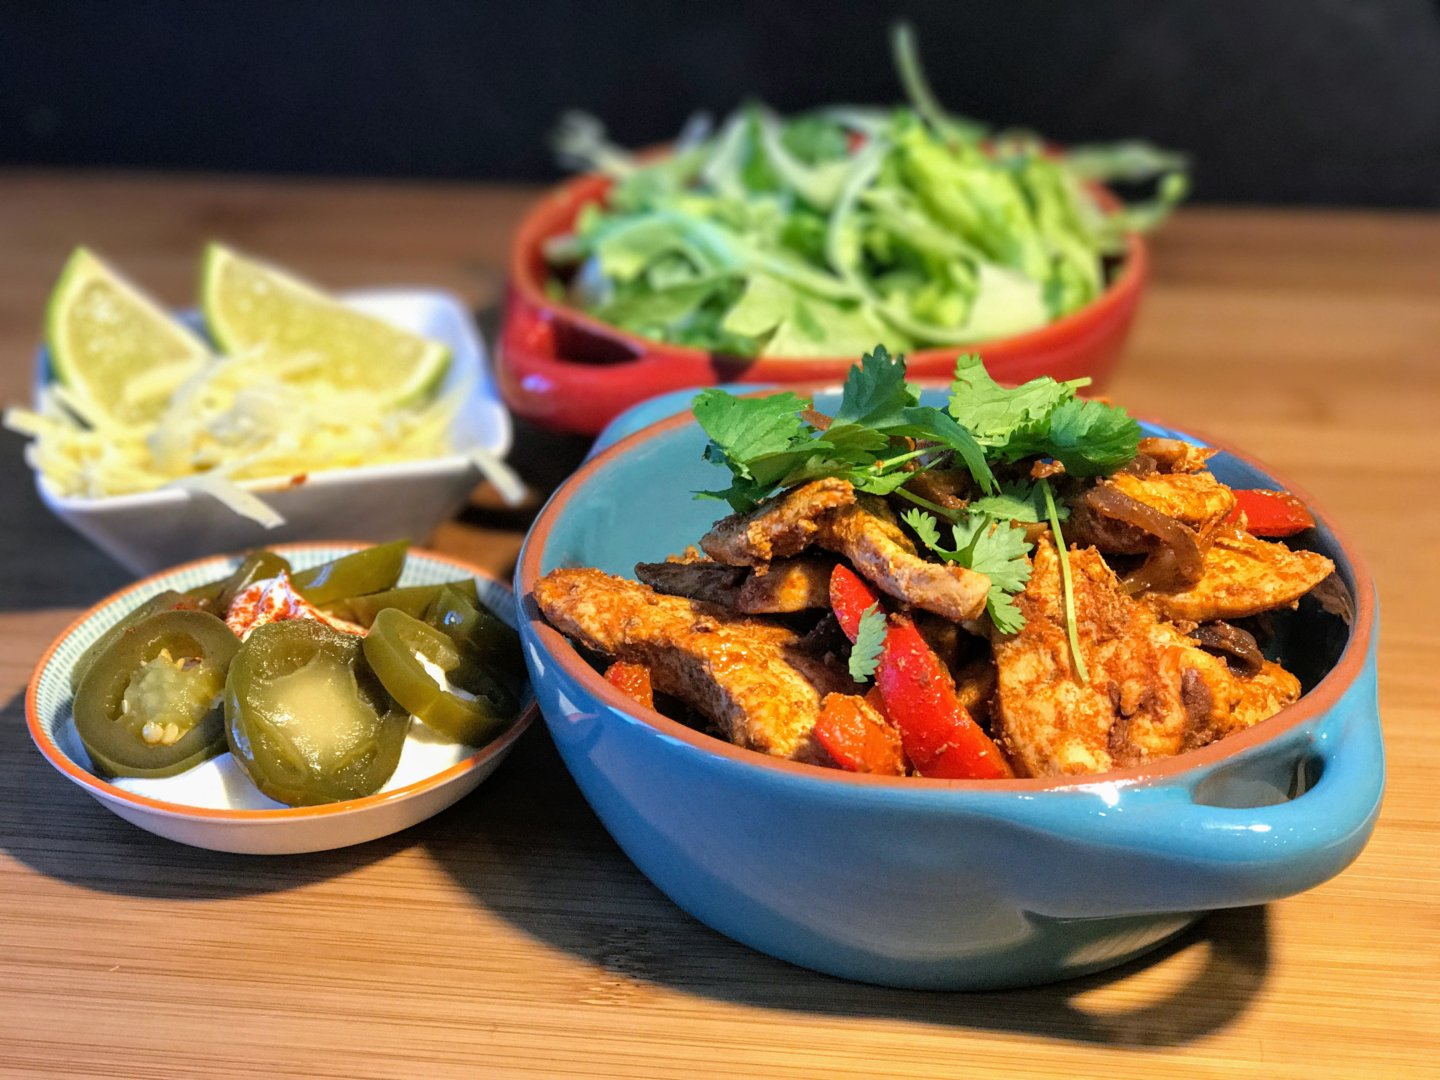 Spicy As Flip Chicken Fajita 1.0